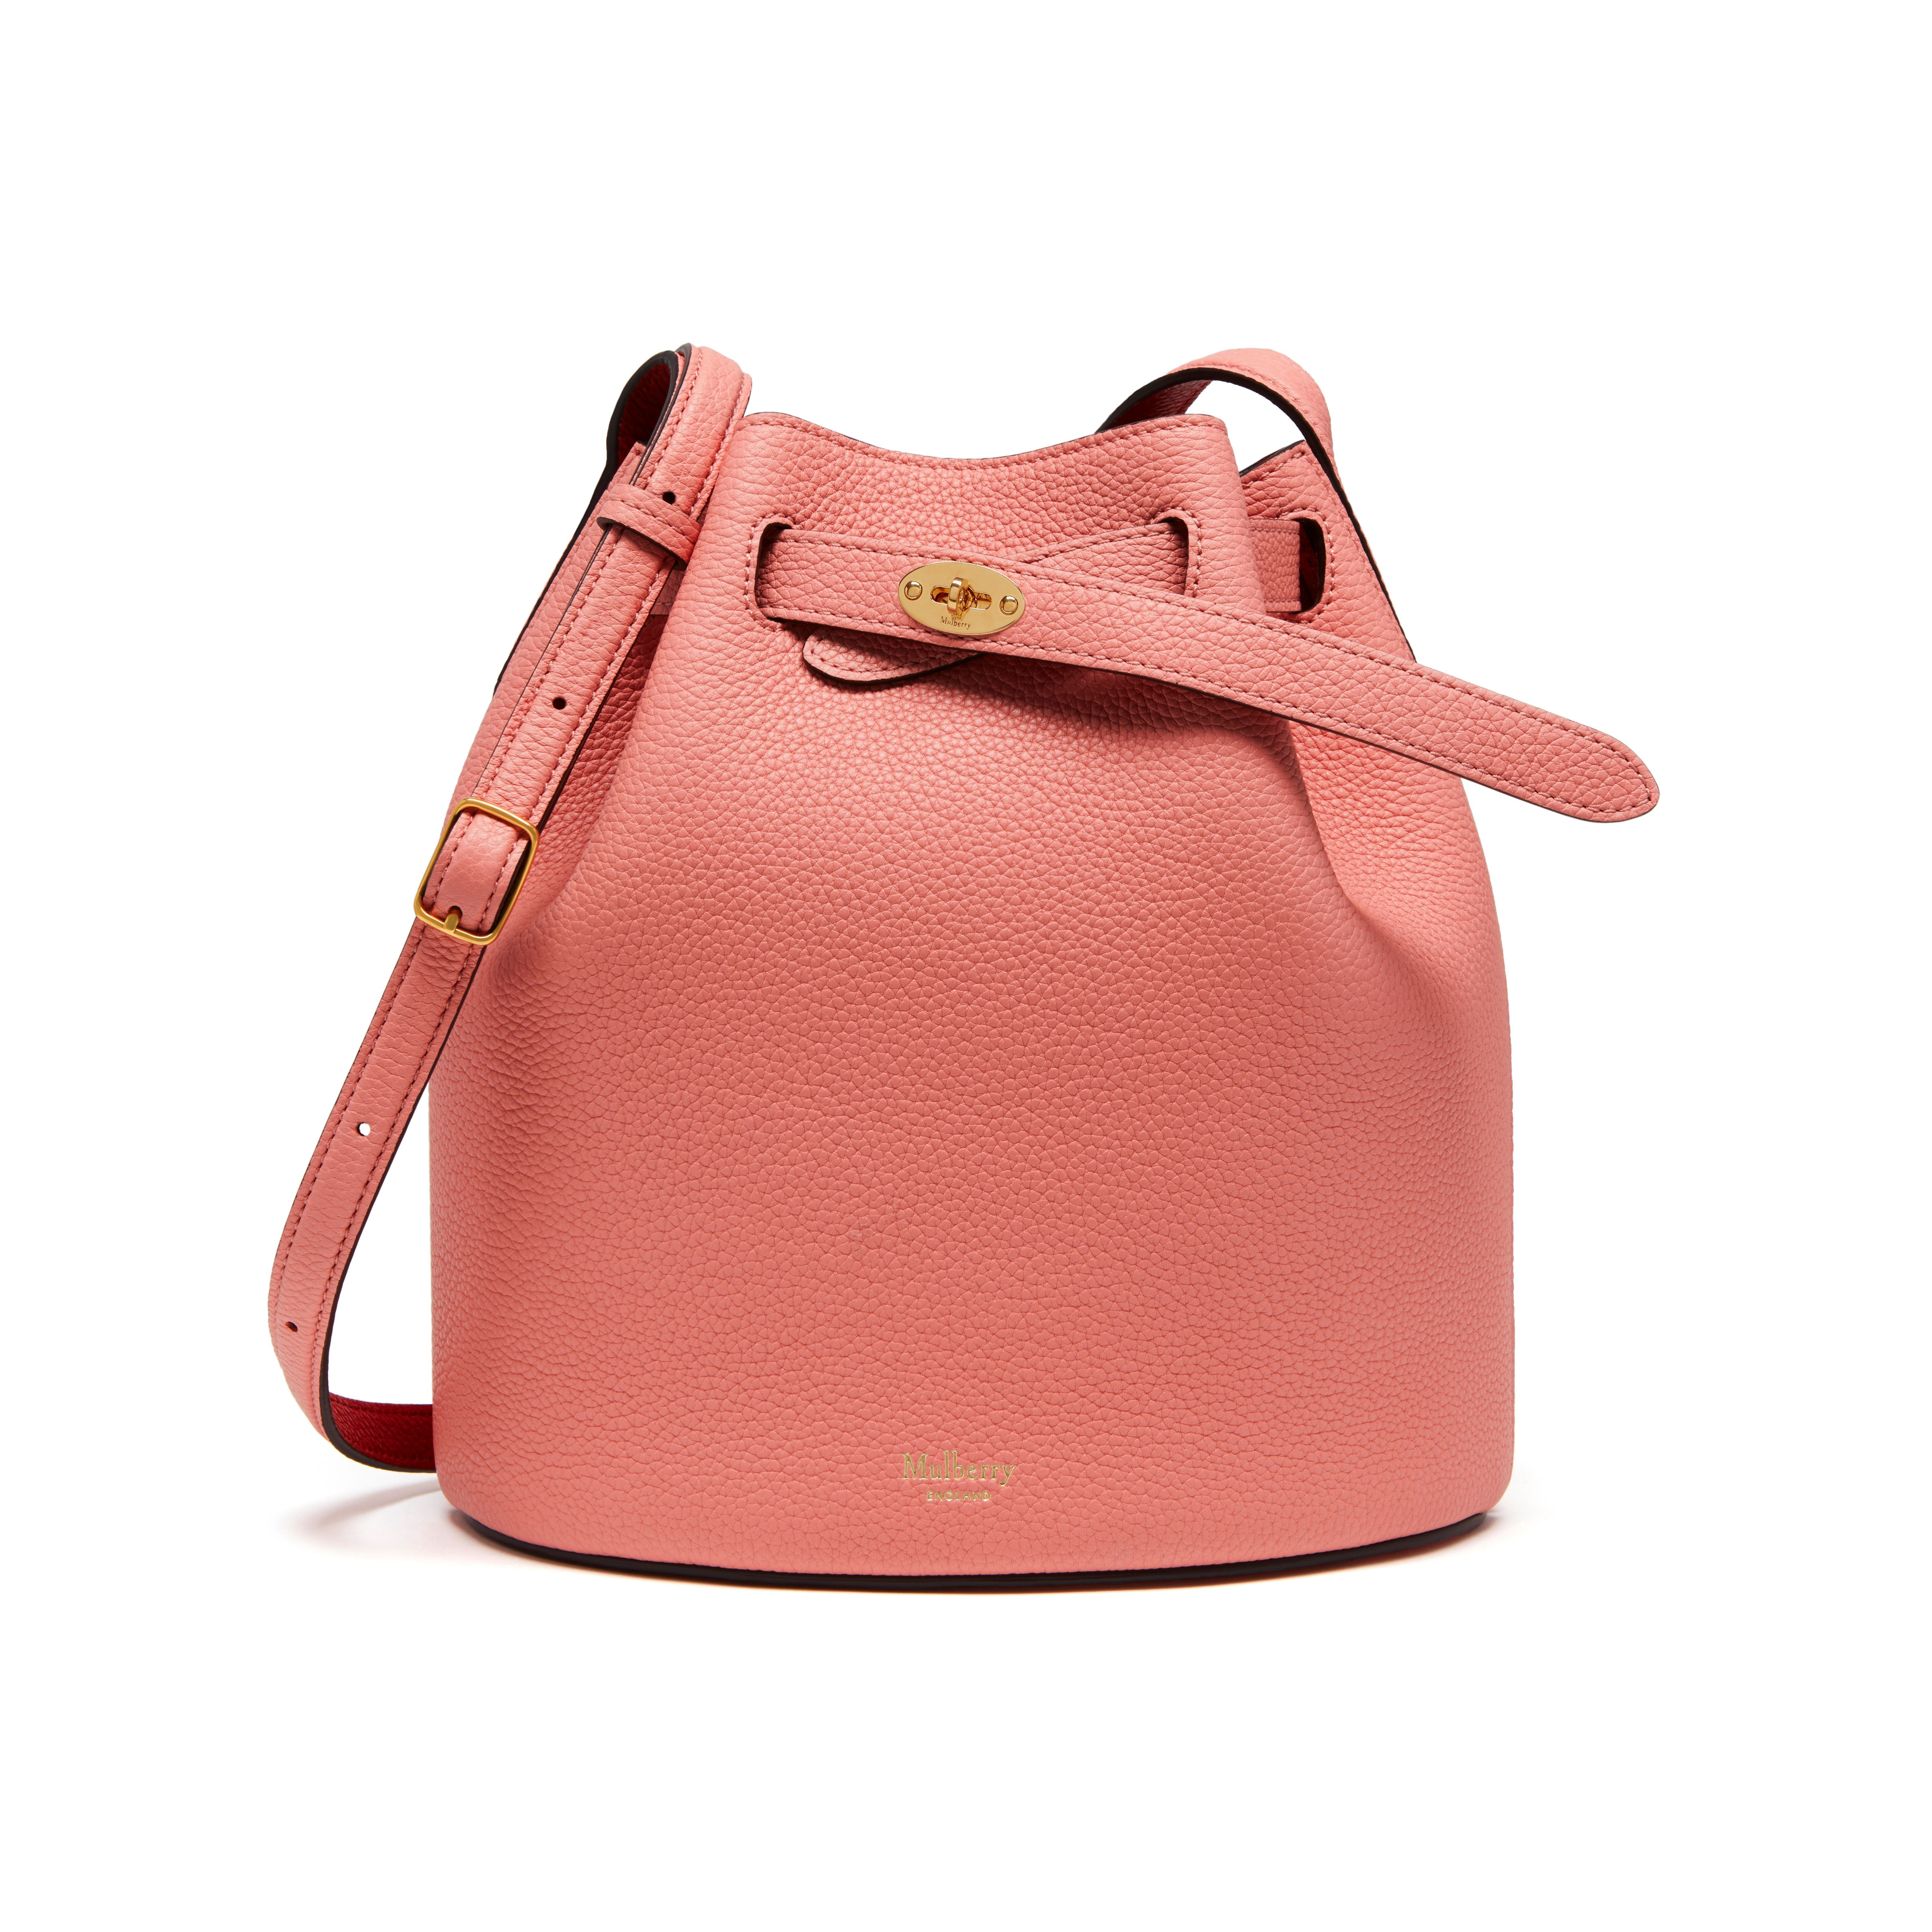 Shop the Abbey in Macaroon Pink & Scarlet Small Classic Grain Leather at Mulberry.com. The Abbey is a traditional 'bucket bag' with drawstring detailing, contrast lining and a range of eye-catching or iconic leather finishes. The Abbey features the iconic postman's lock as a nod to Mulberry's heritage DNA, securing a simple belt closure on a timeless, easy to wear style.